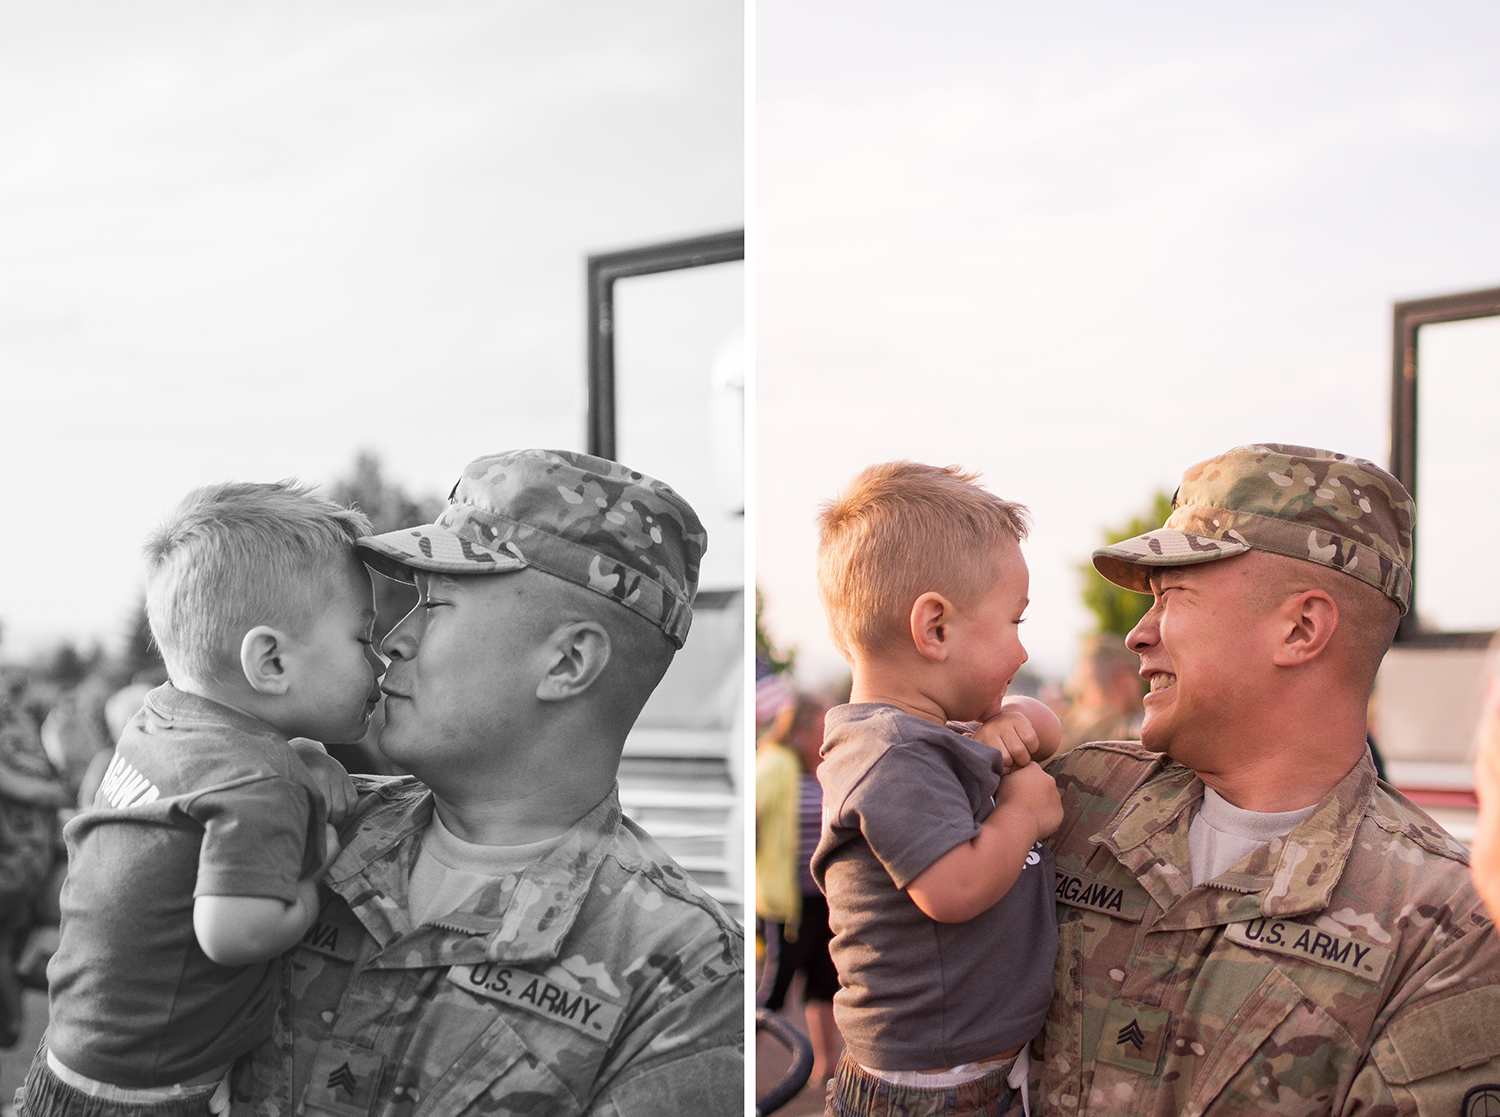 Son and Soldier reunite